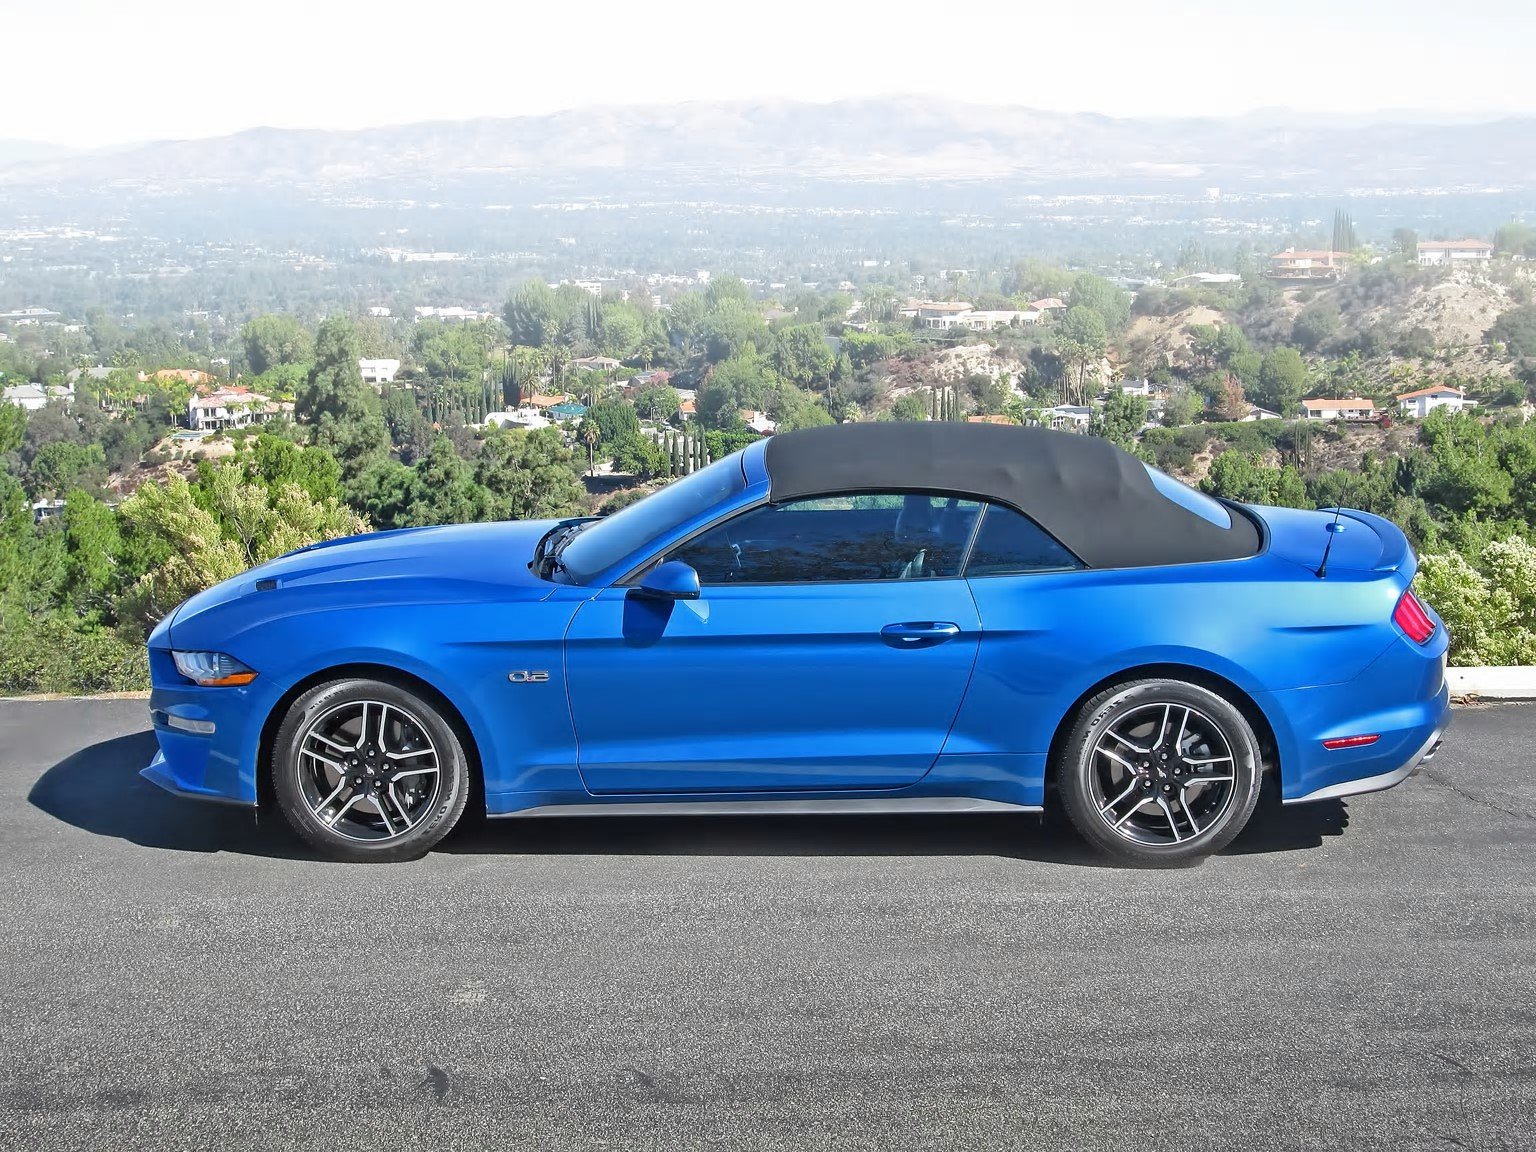 Reviews One Week With 2019 Ford Mustang Gt Convertible